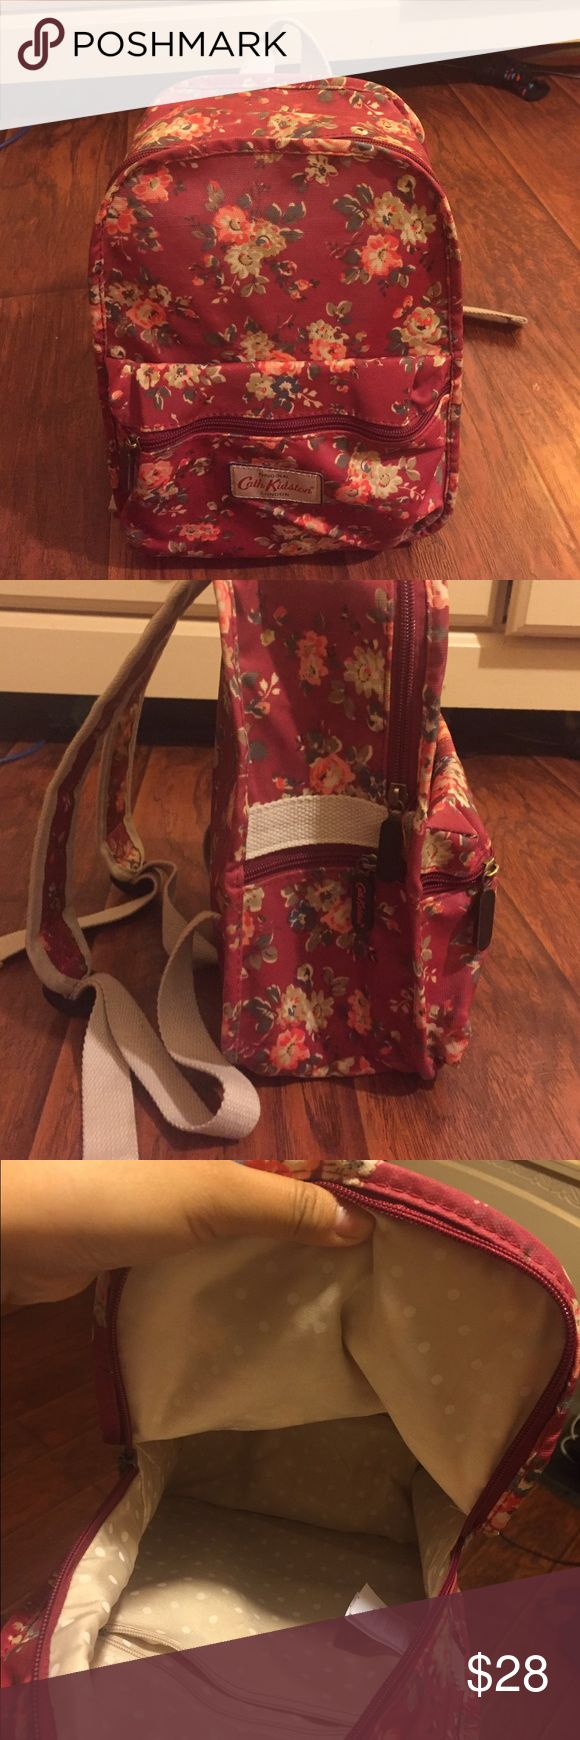 CATH KIDSTON MINI BACKPACK In great condition! Mini backpack, perfect for trips to the beach, park, Disneyland, etc. 2 pockets on each side. Pocket in the inside as well. cath kidston Bags Mini Bags